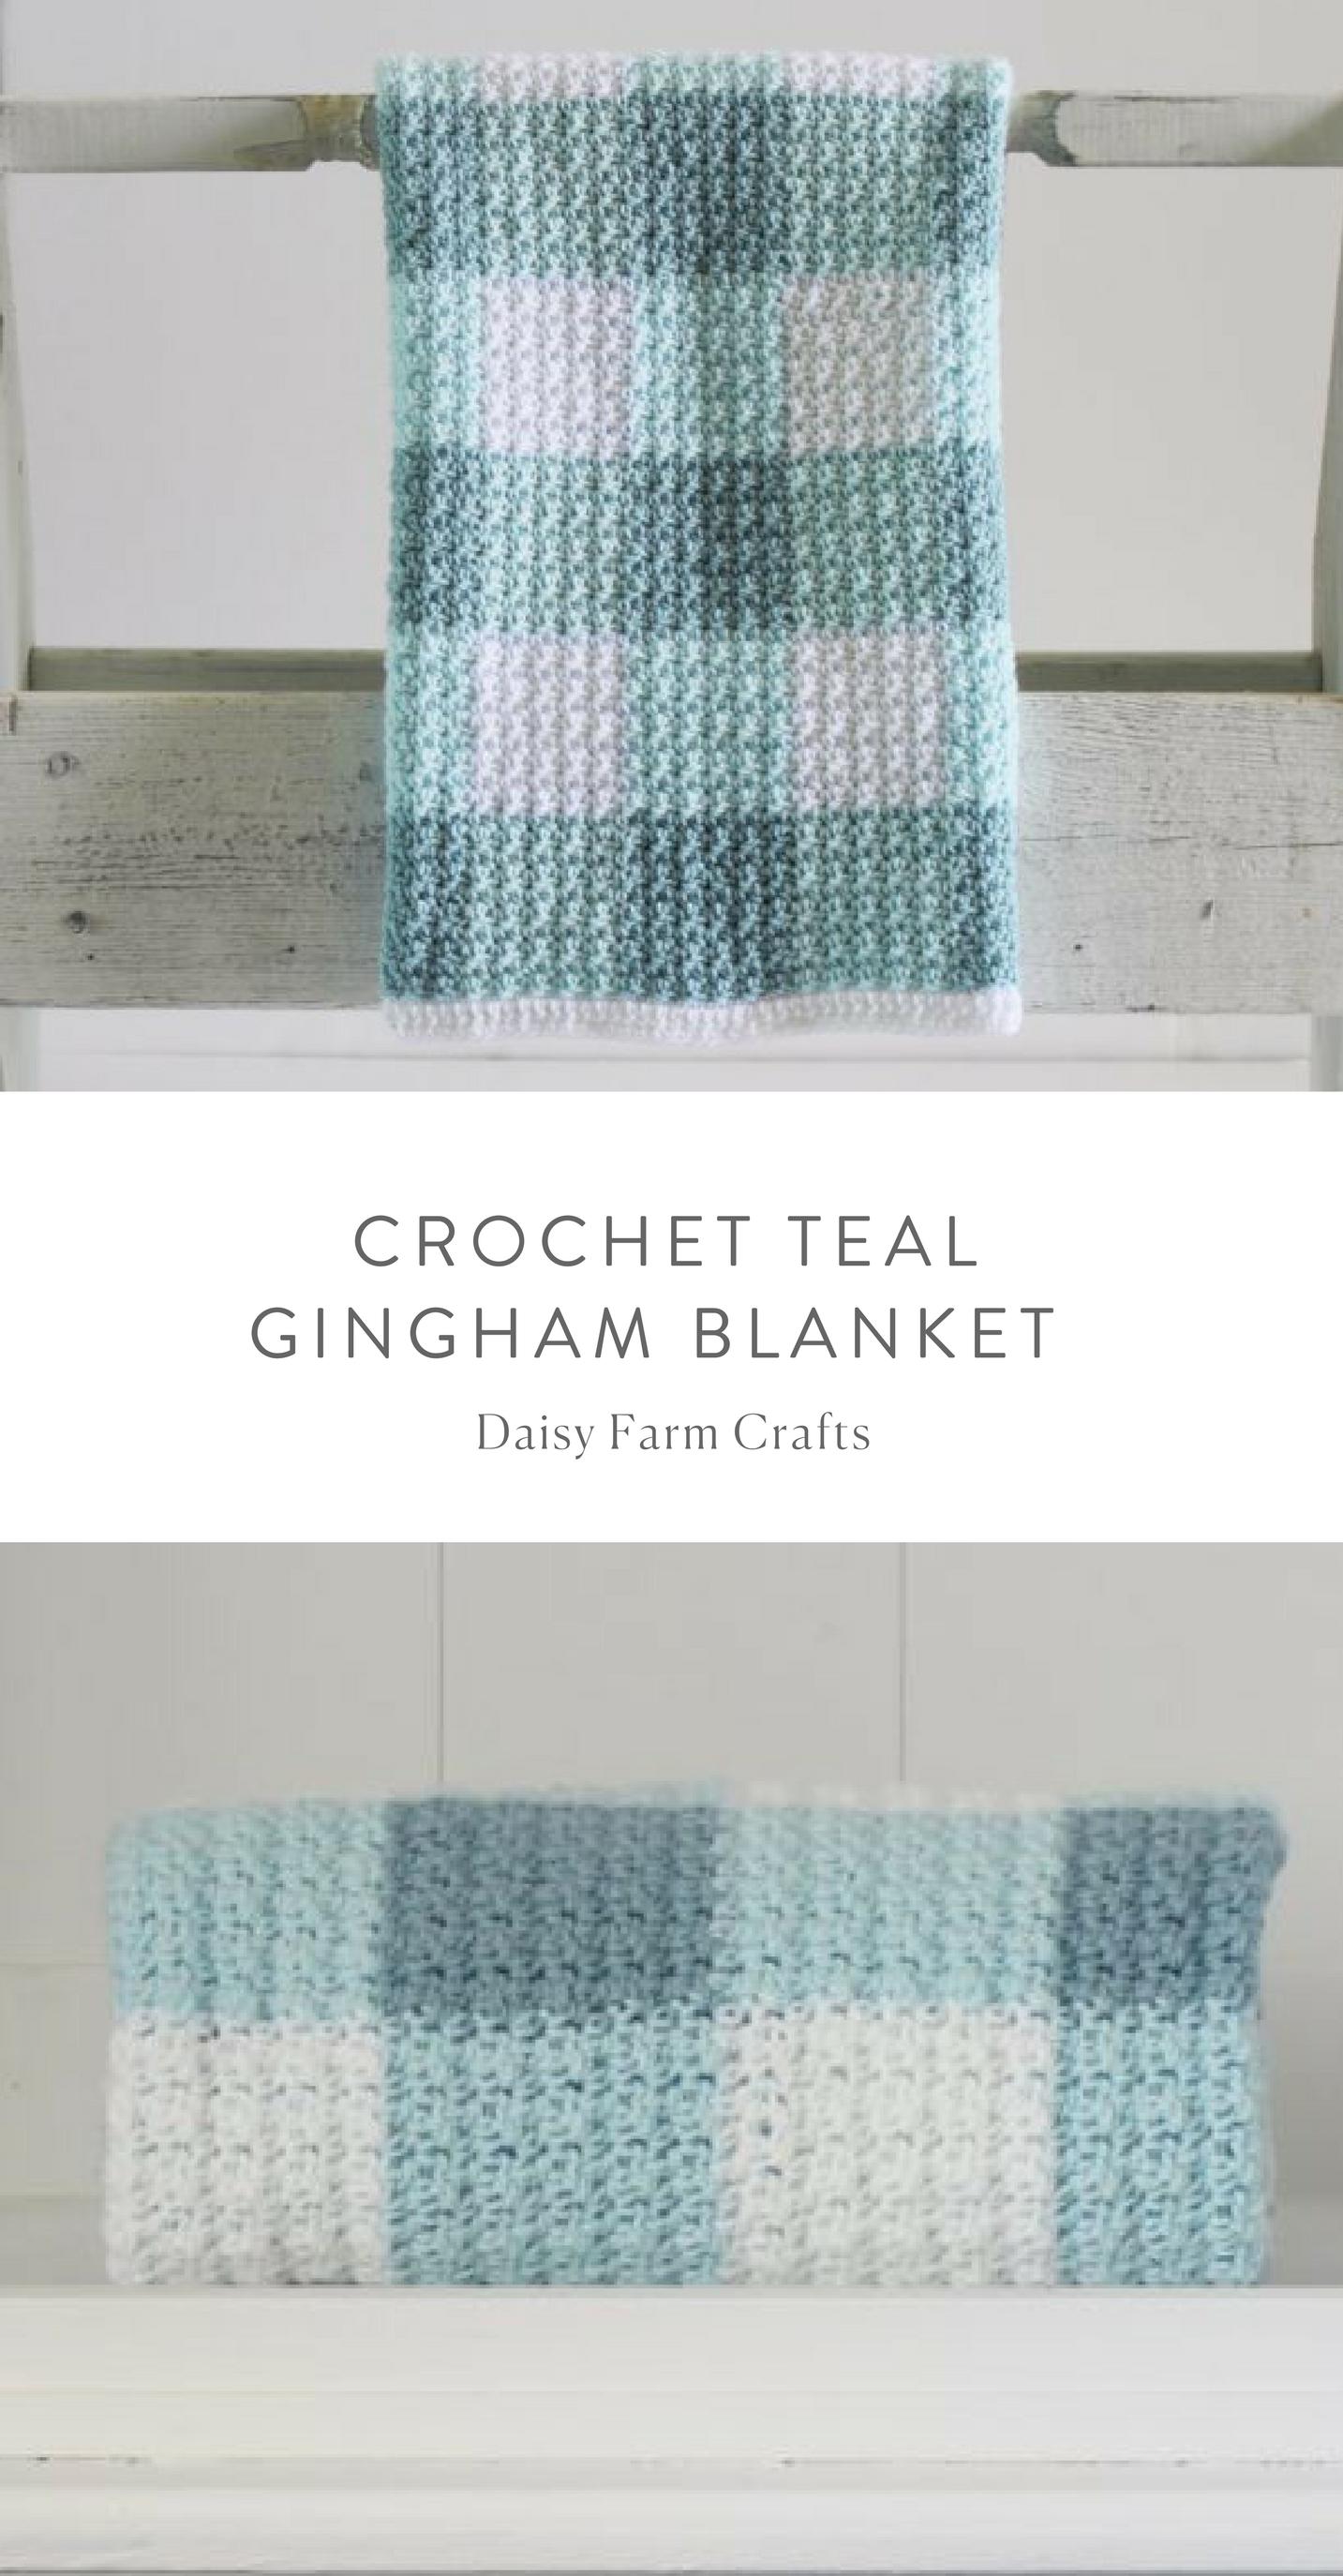 Free Pattern - Crochet Teal Gingham Blanket | Crochet | Pinterest ...